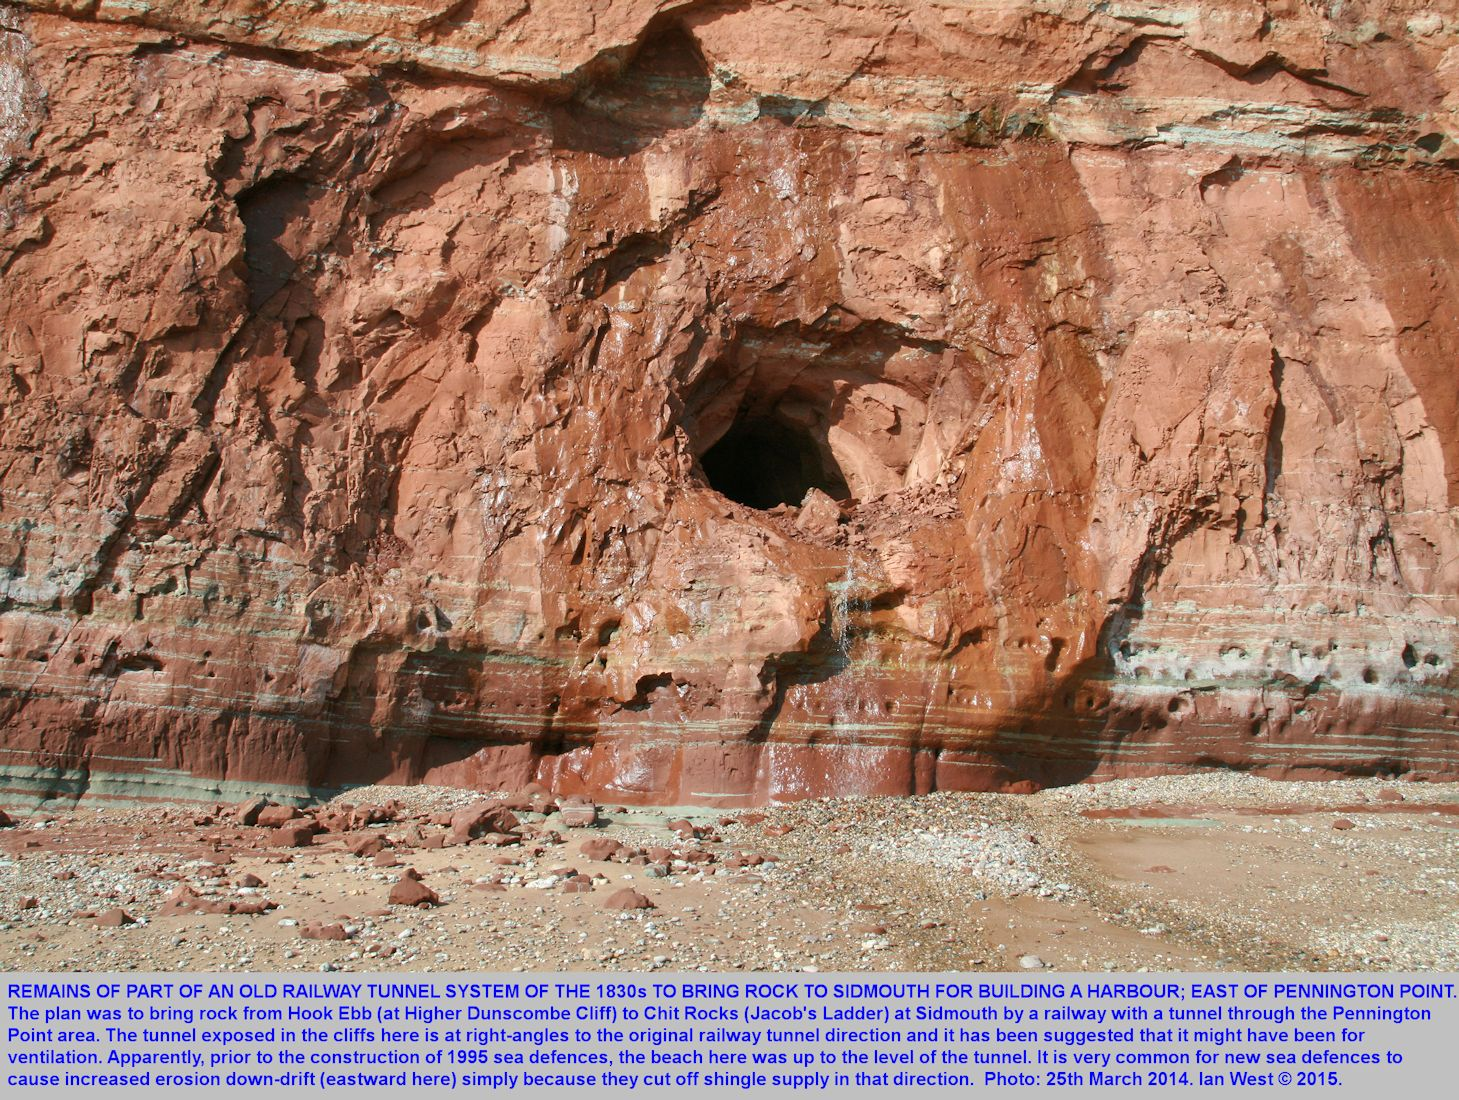 An old tunnel in the Sidmouth Mudstone, east of Pennington Point, Sidmouth, Devon, probably part of an old railway system intended to be used for the construction of a harbour at Sidmouth